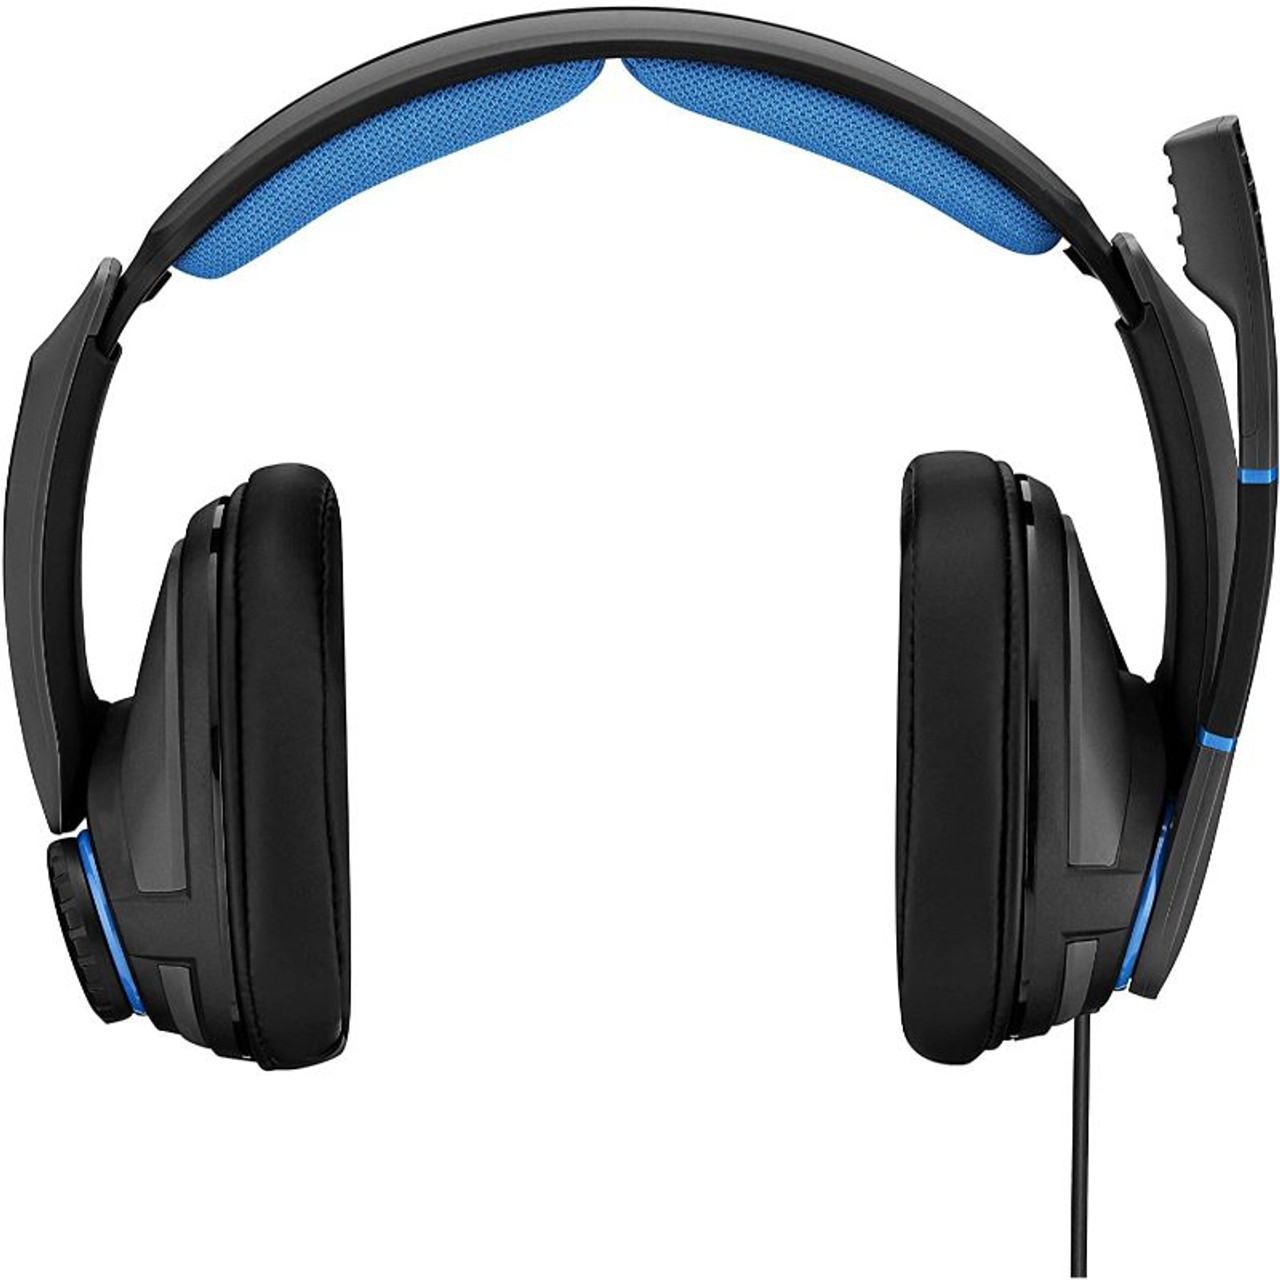 EPOS Sennheiser GSP 300 Gaming Headset with Noise-Cancelling Mic